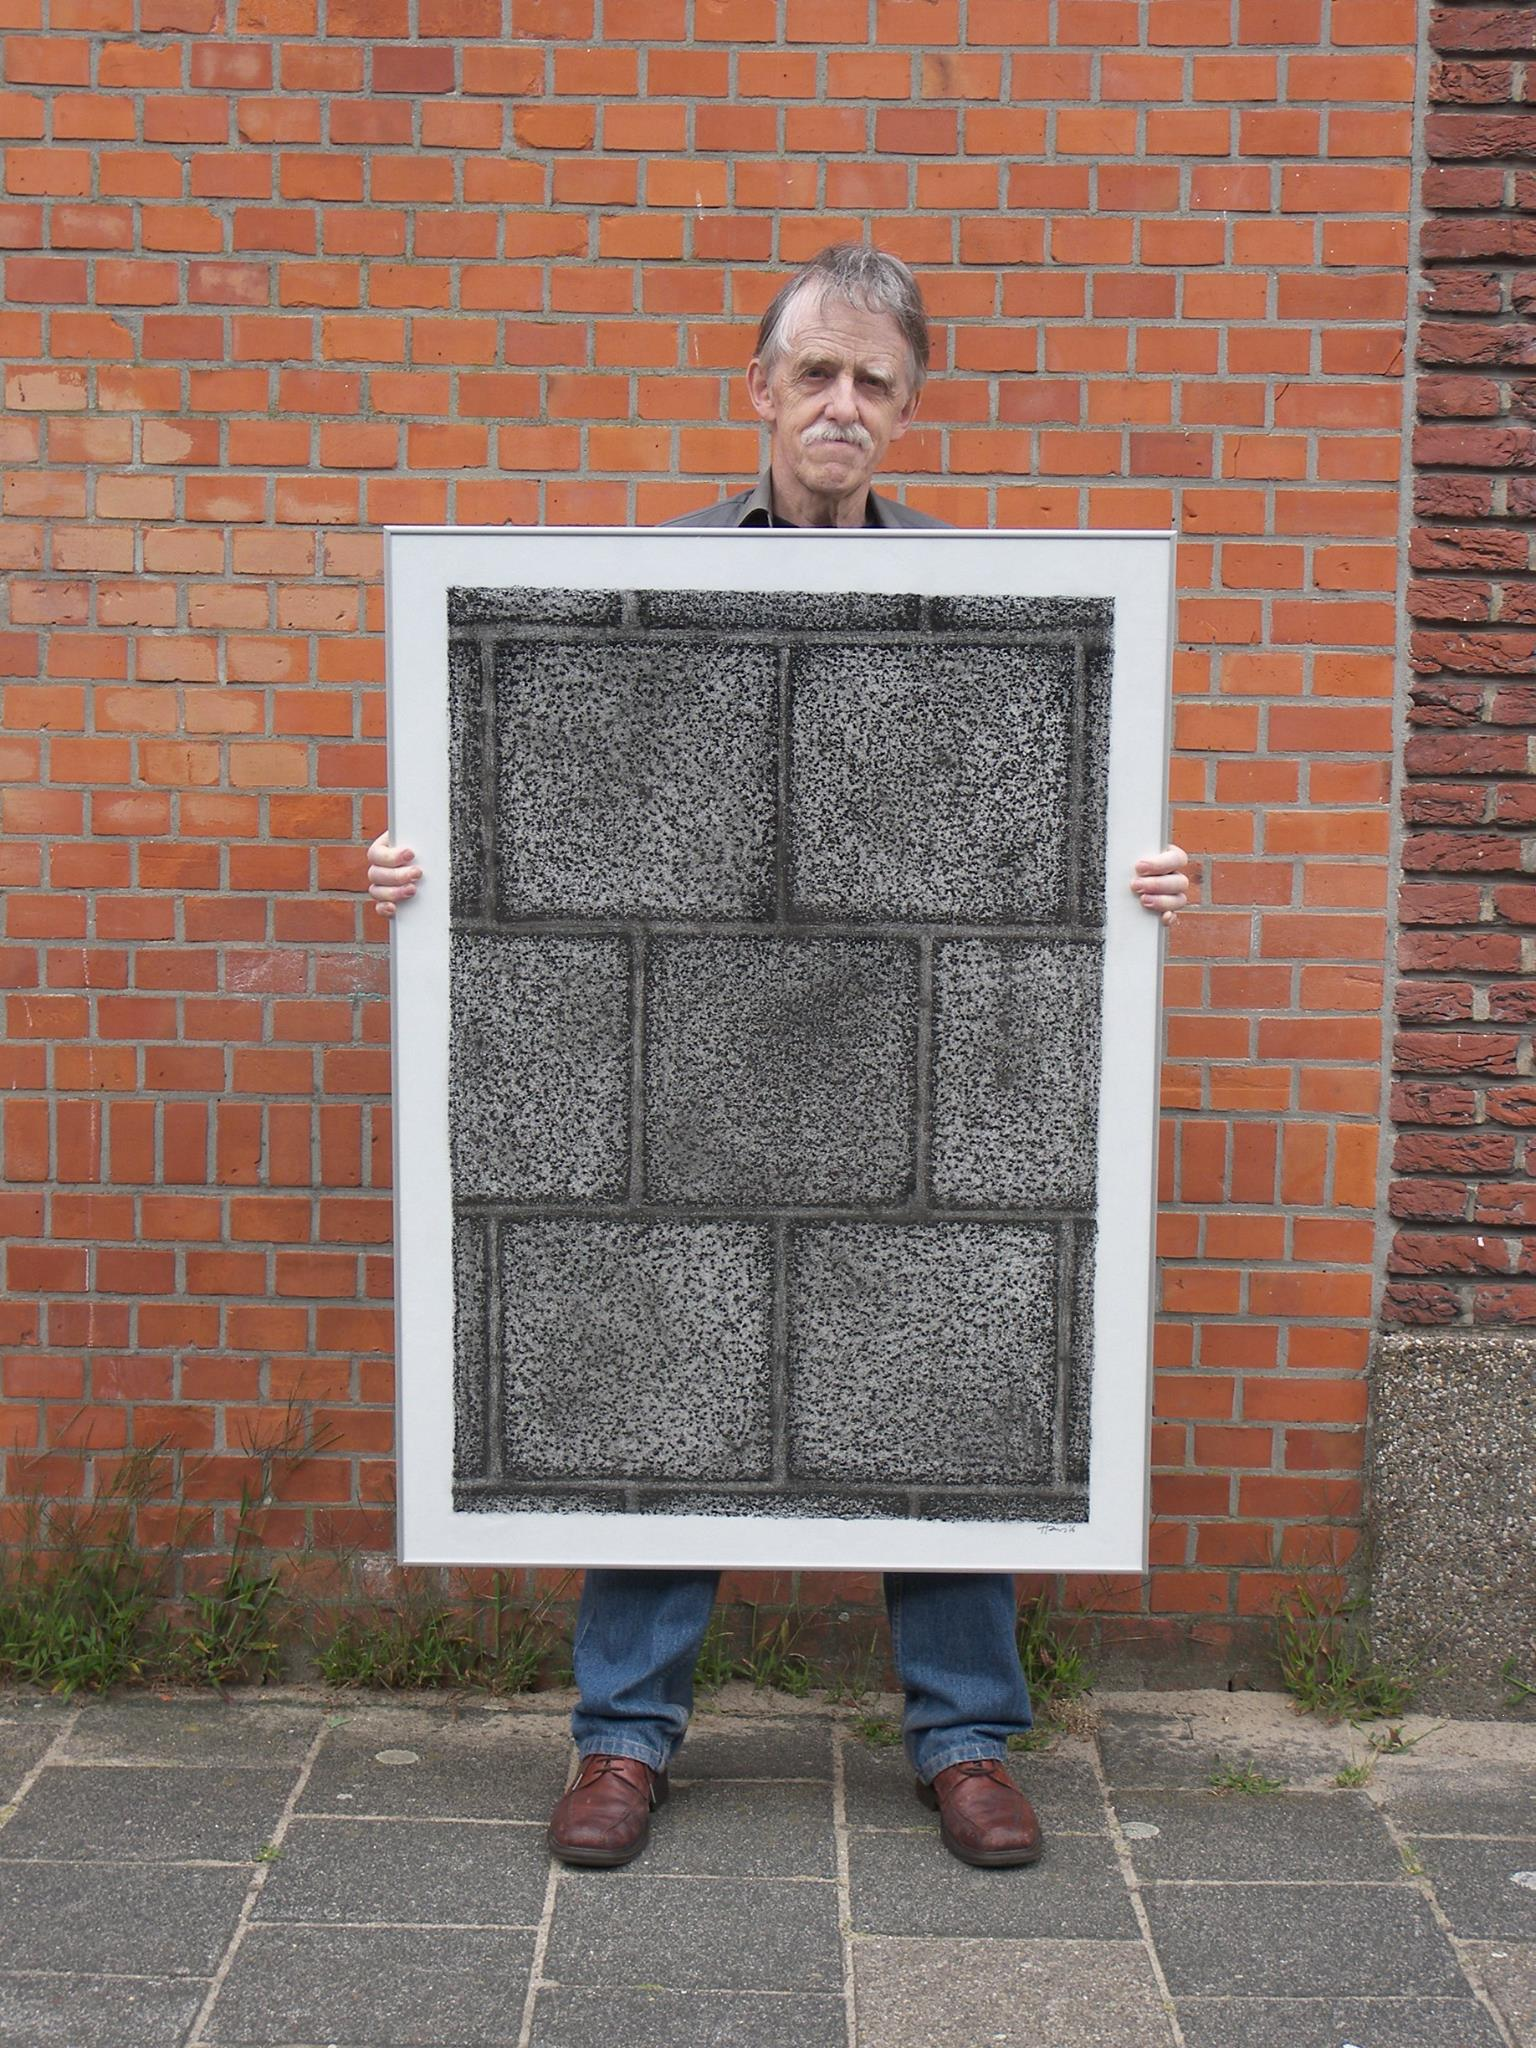 Hans Rietbergen holding up a rubbing of the paving stones where he takes pictures of people passing by his home.